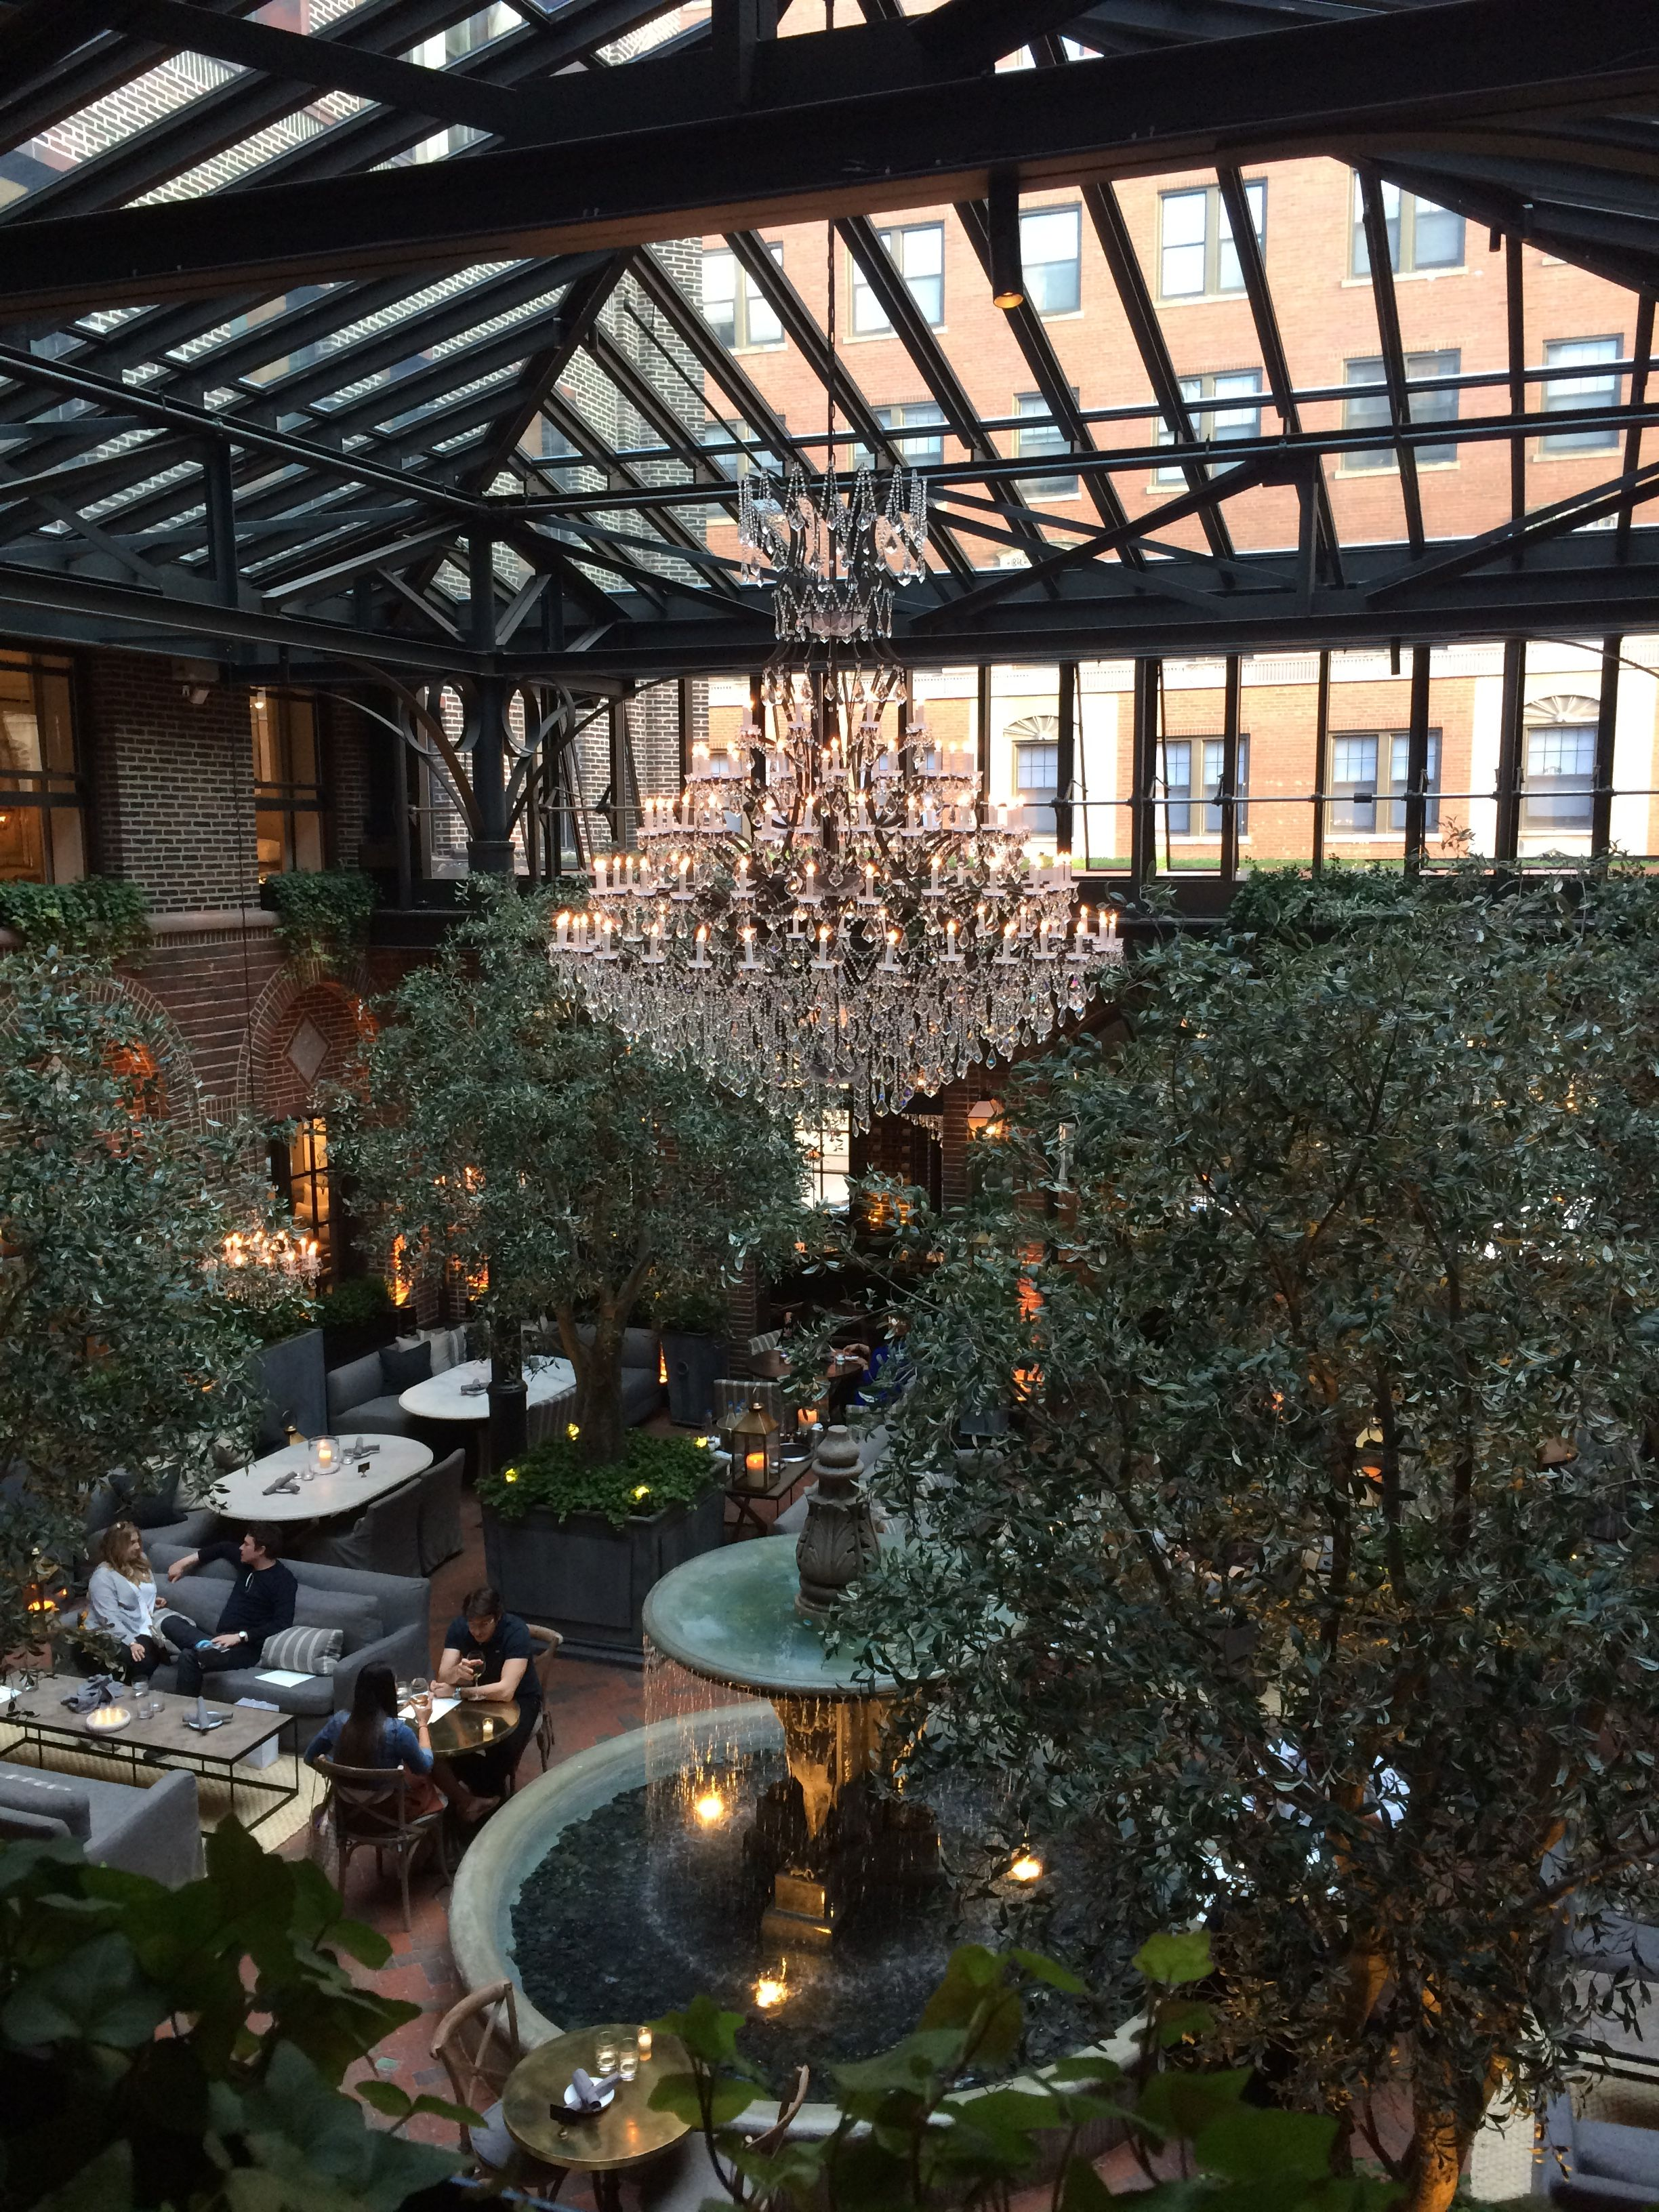 Restoration Hardware Chicago 3 Arts Club Cafe 1300 N Dearborn St, Chicago, IL 60610 #restorationhardware